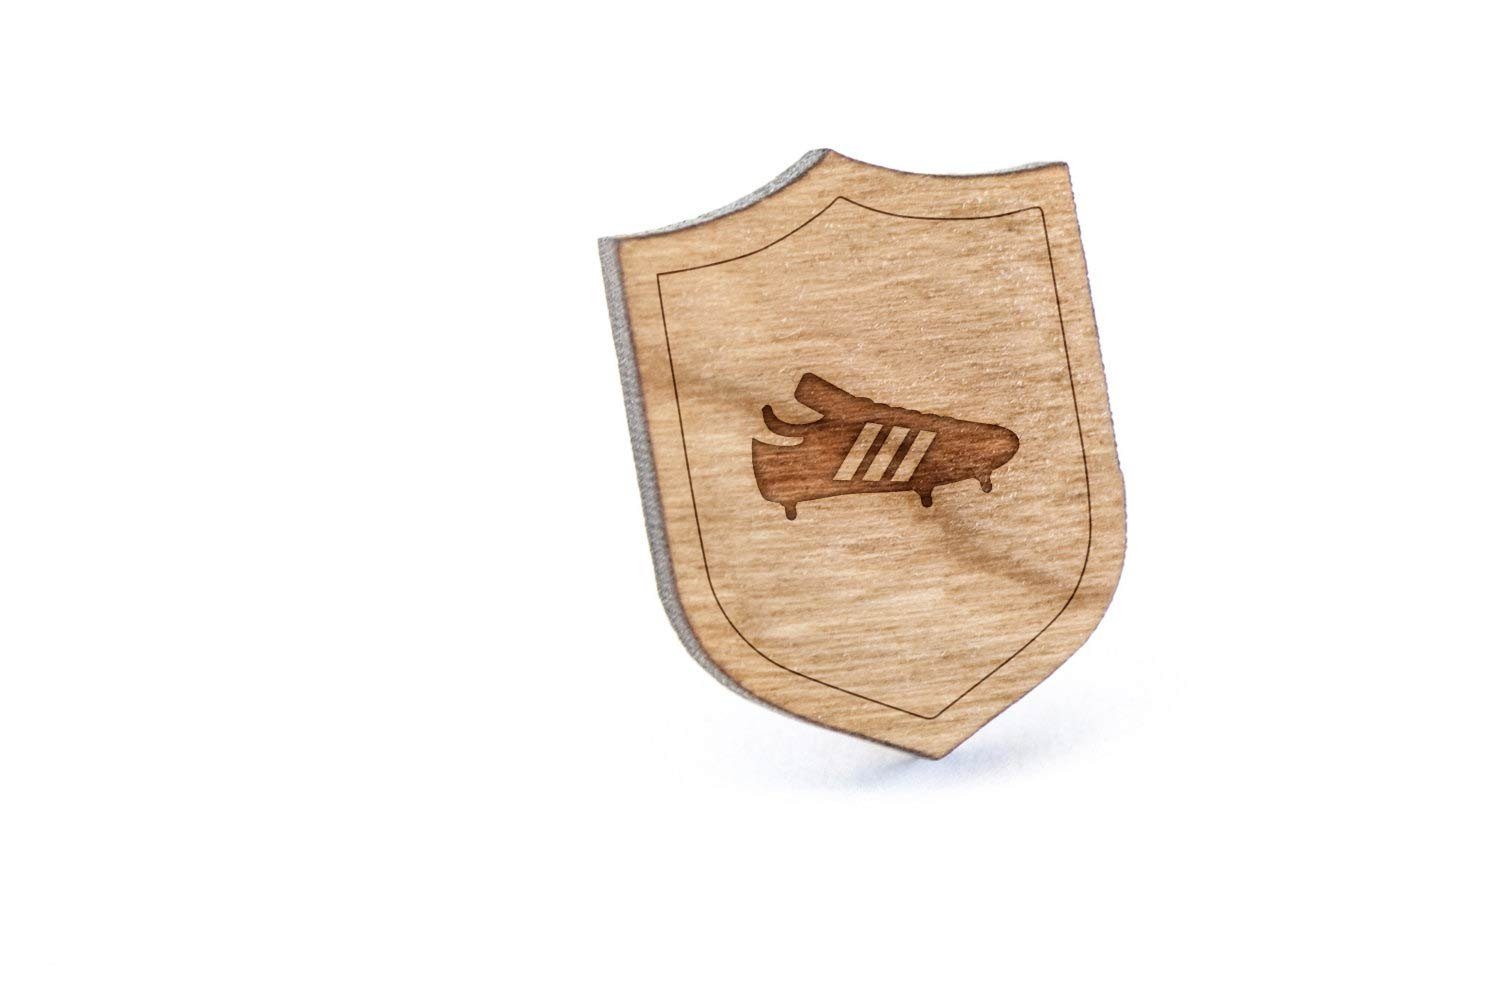 Soccer Boot Lapel Pin, Wooden Pin And Tie Tack   Rustic And Minimalistic Groomsmen Gifts And Wedding Accessories